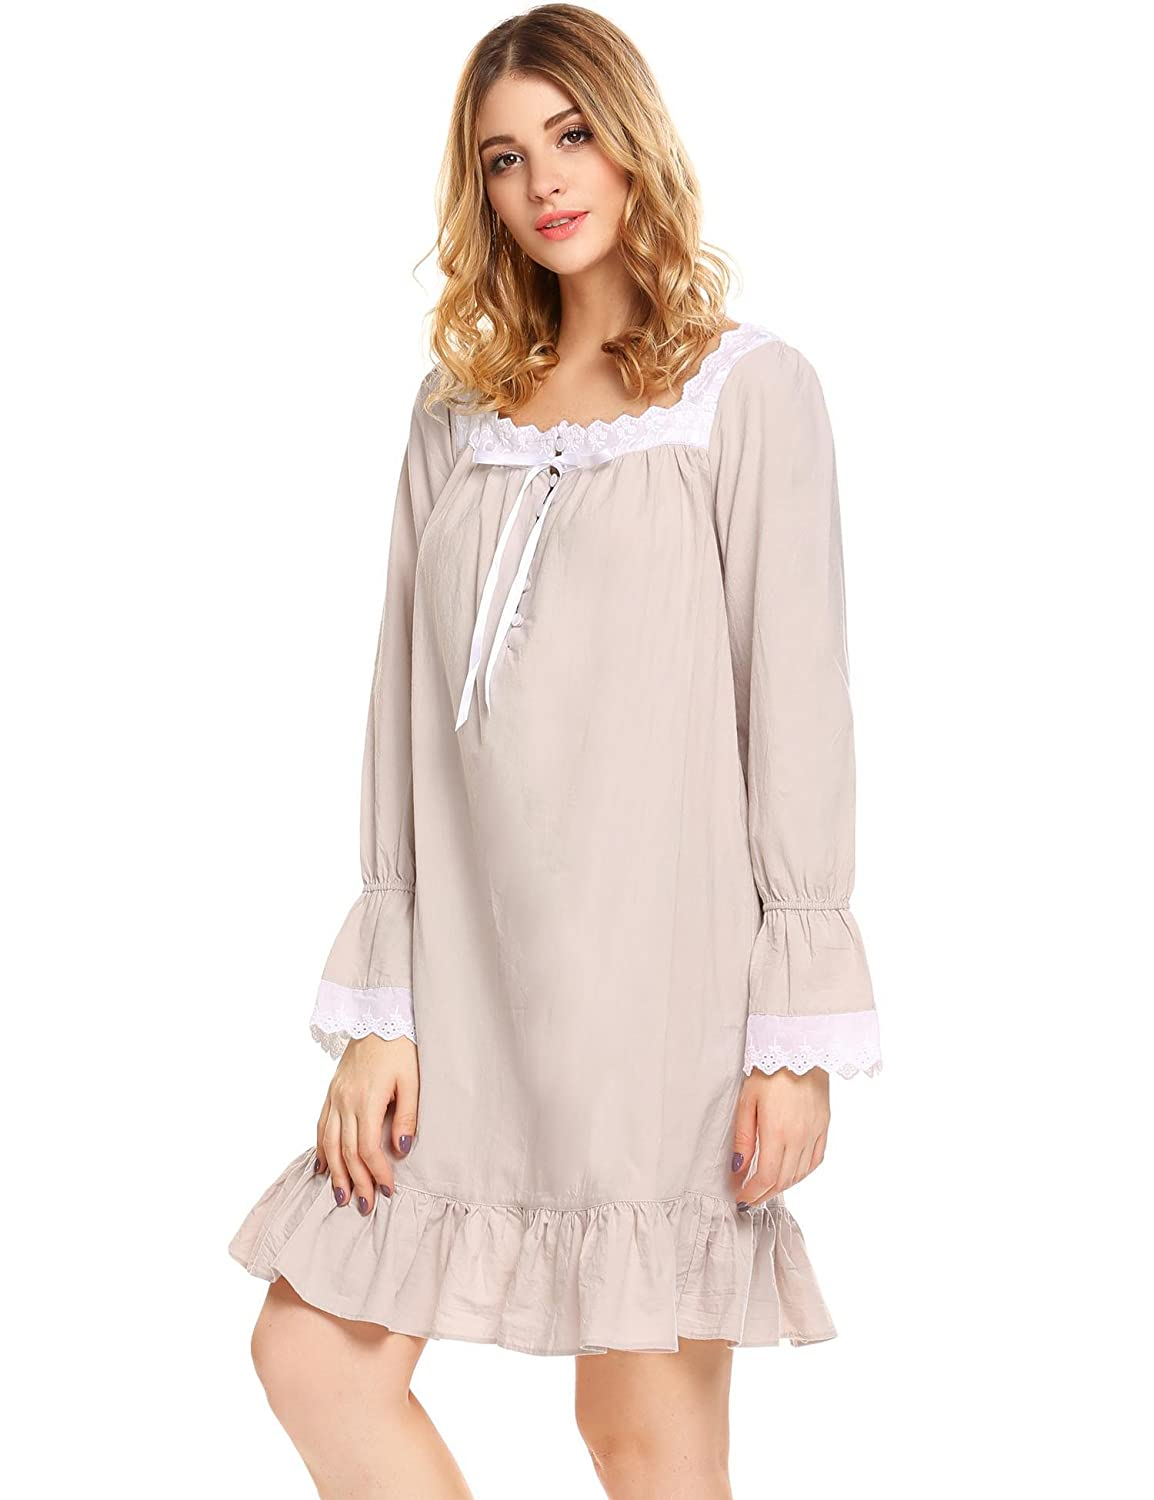 0bd1fab346 L amore Womens Victorian Cotton Long Sleeve Short Long Lingerie Dress  Nightgown Shift Pure Color Nightwear at Amazon Women s Clothing store